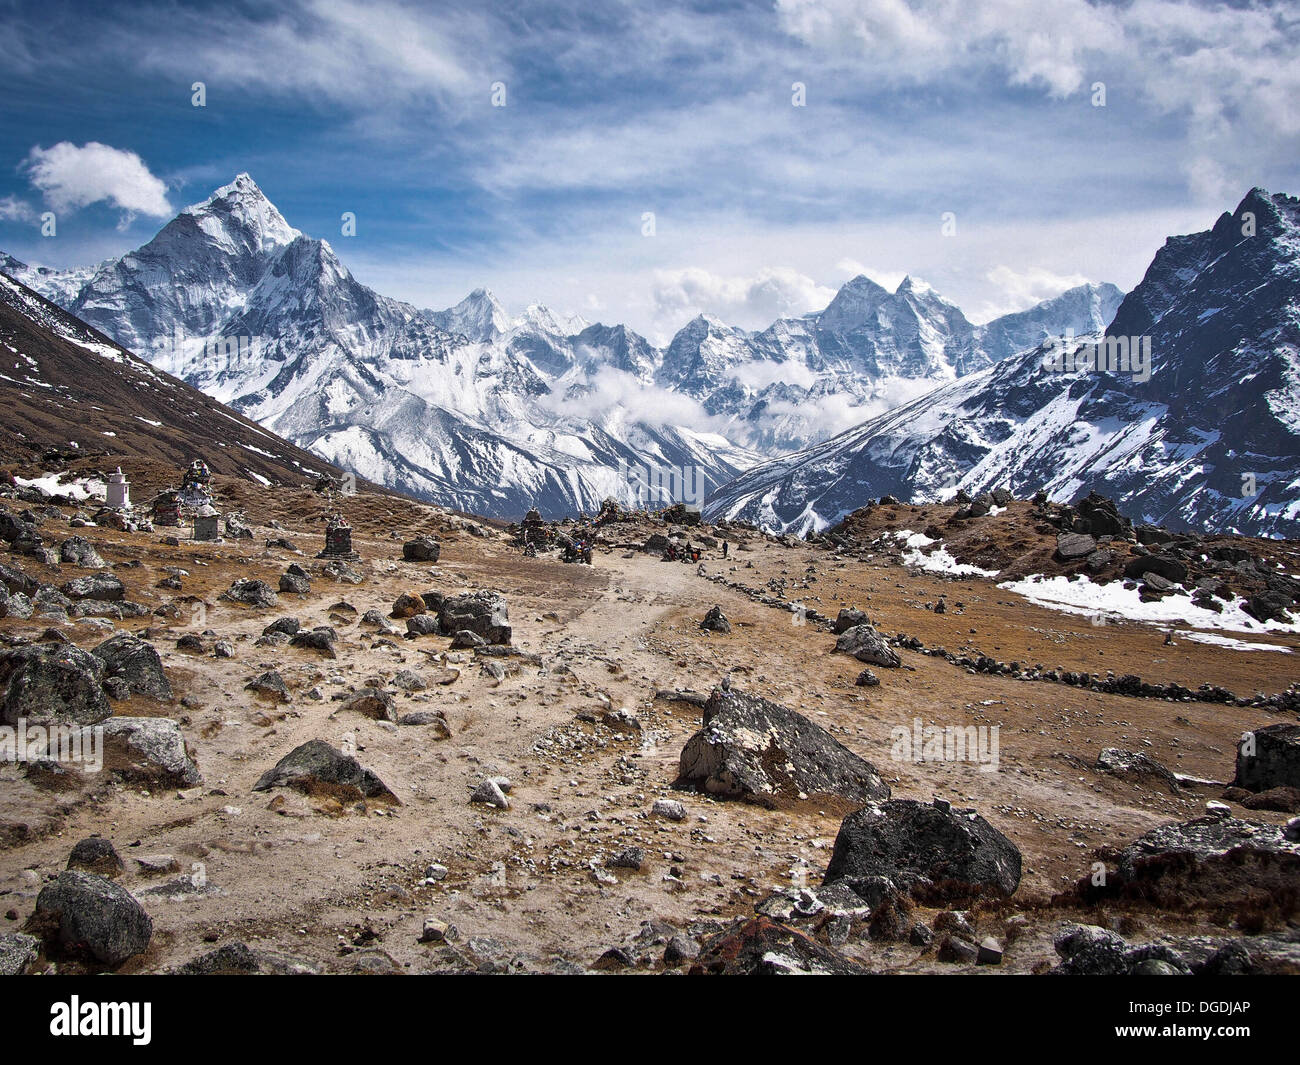 Ama Dablam (left) and other peaks along the Everest Base Camp Trek, Nepal. - Stock Image